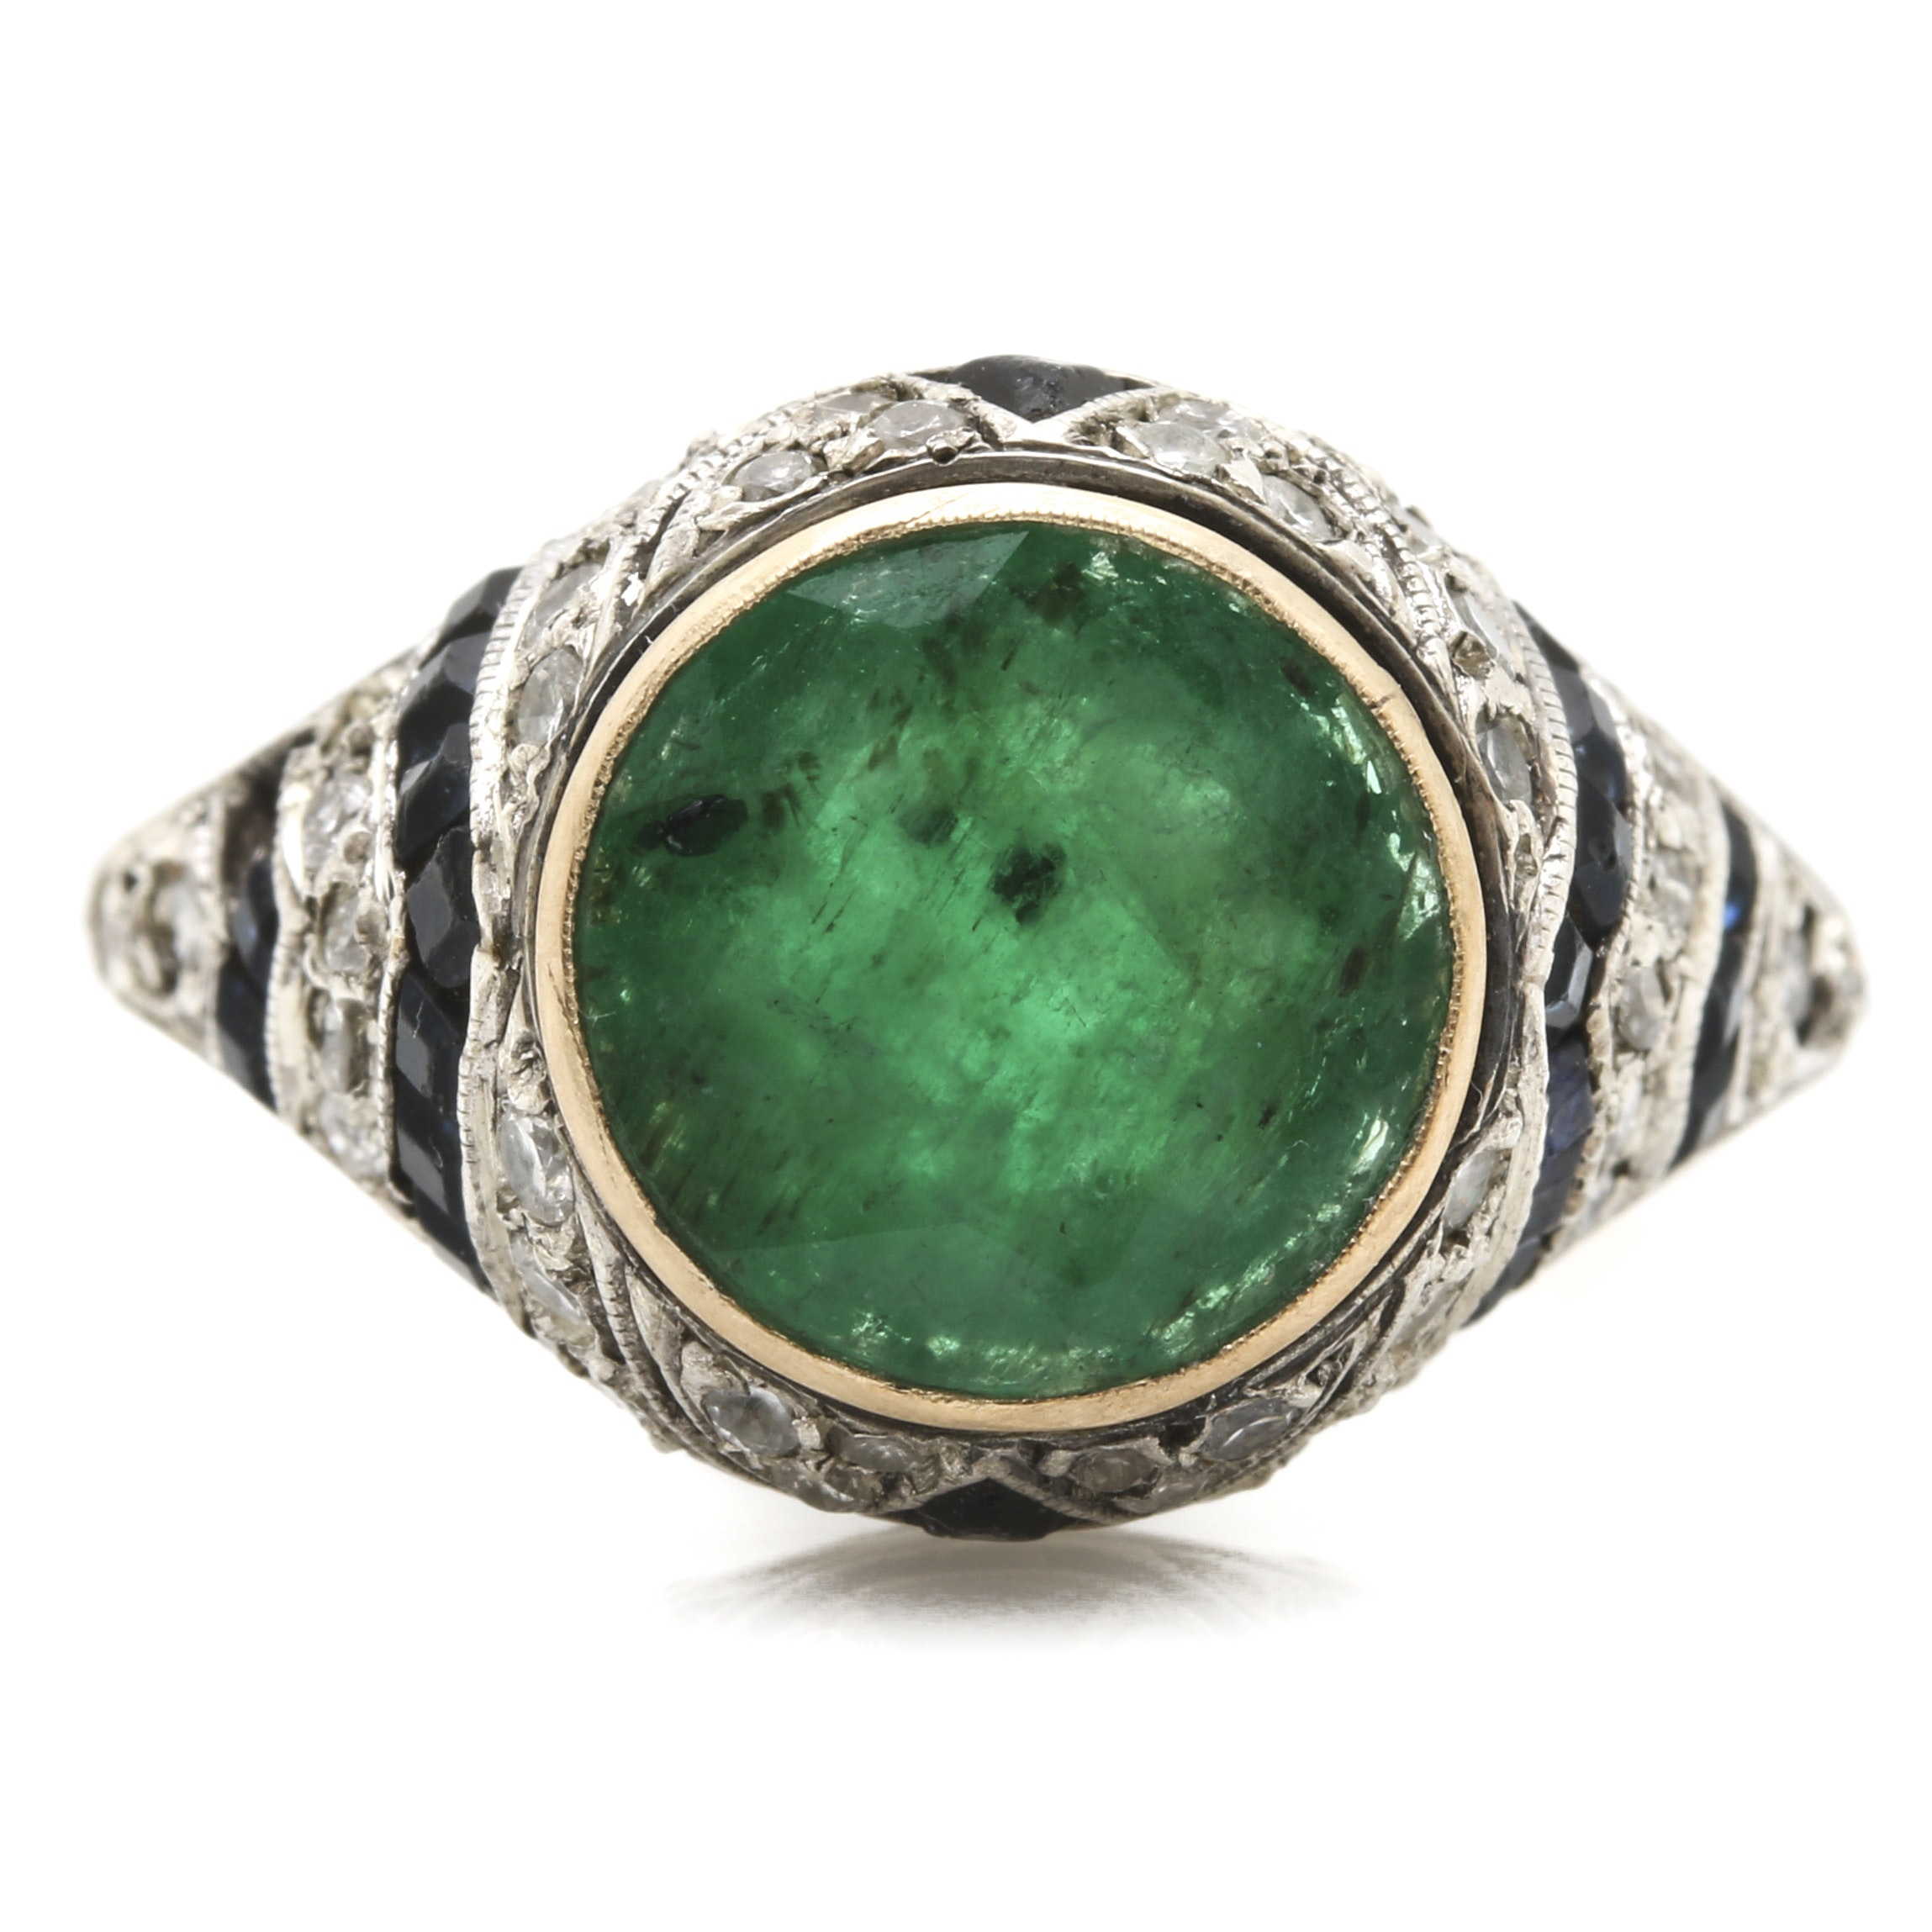 18K Yellow and White Gold Emerald, Diamond, and Glass Ring